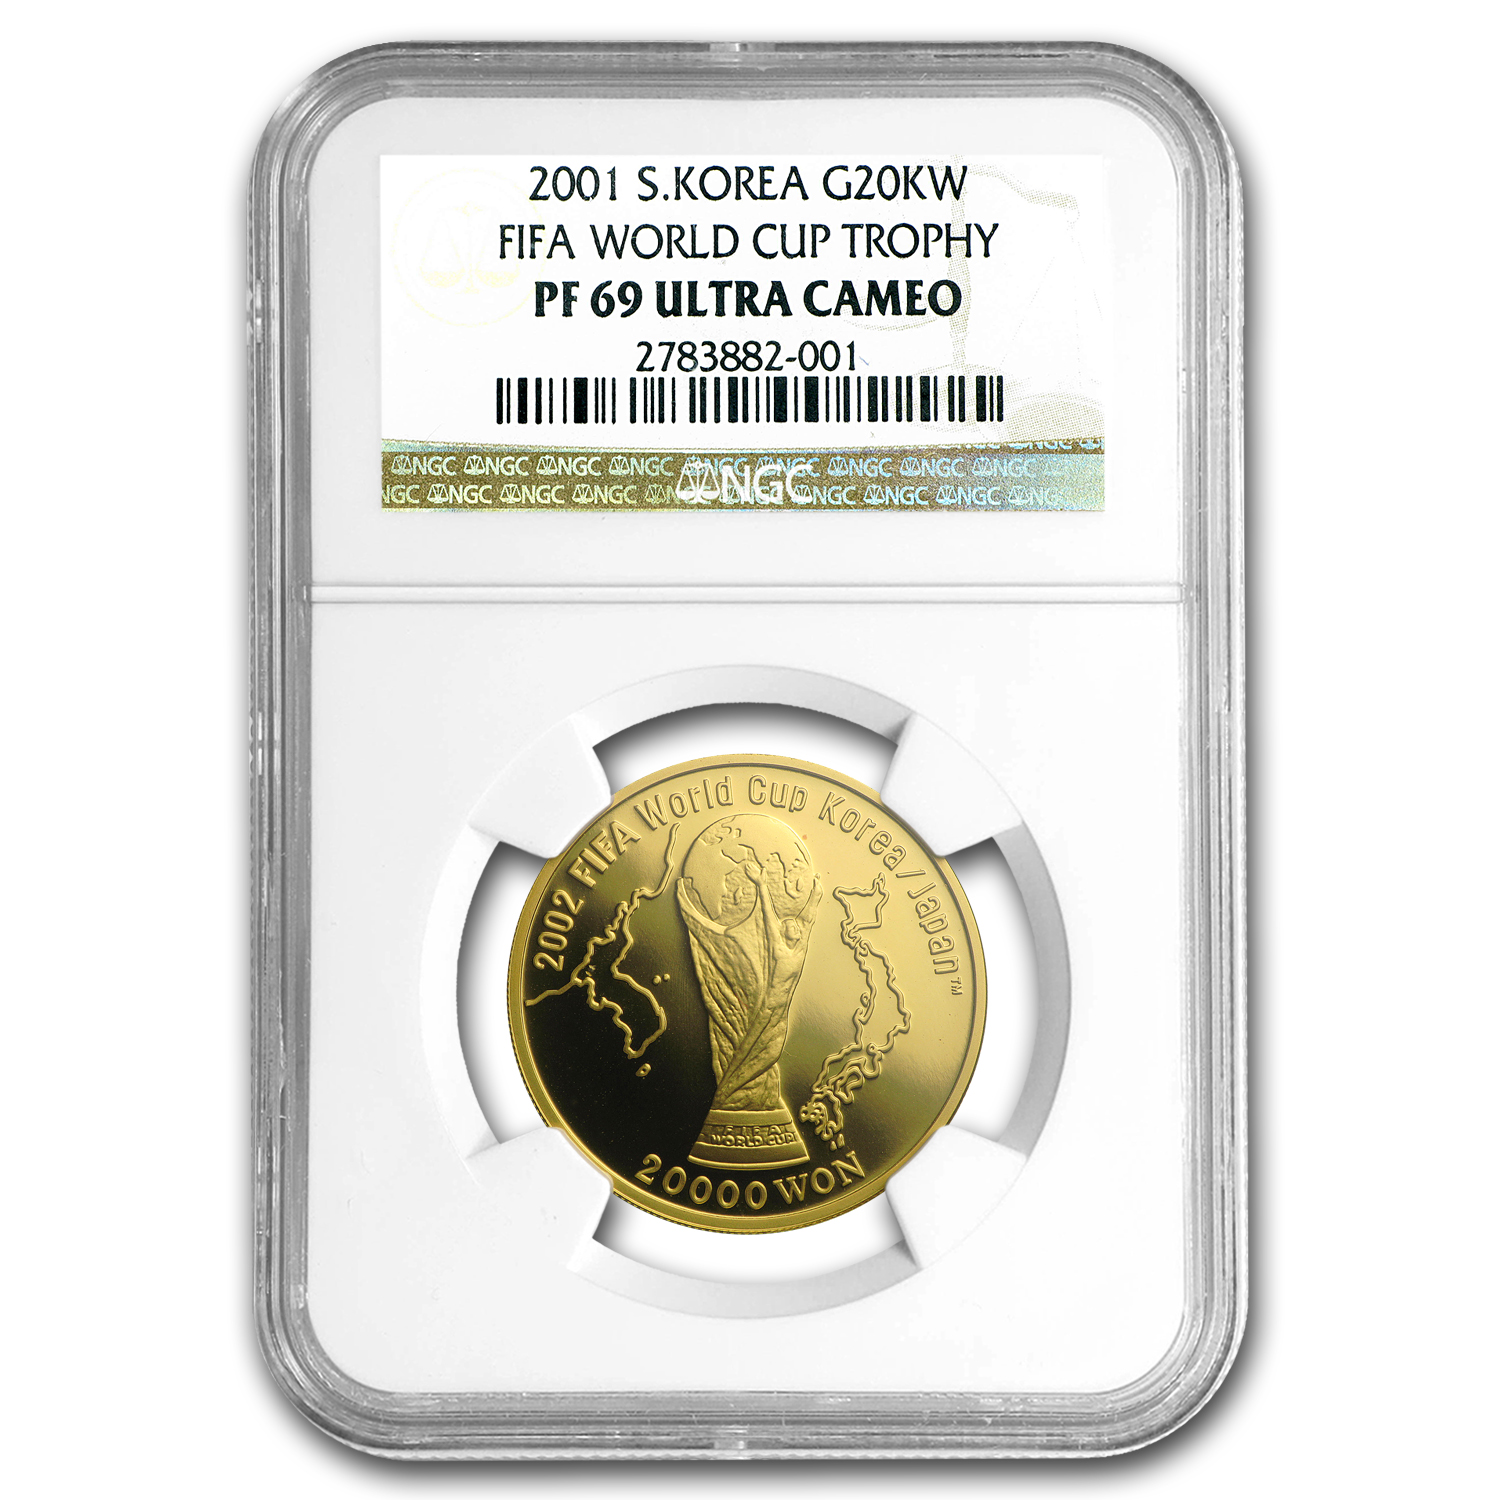 2001 South Korea Gold 20k Won FIFA World Cup Trophy PF-69 NGC